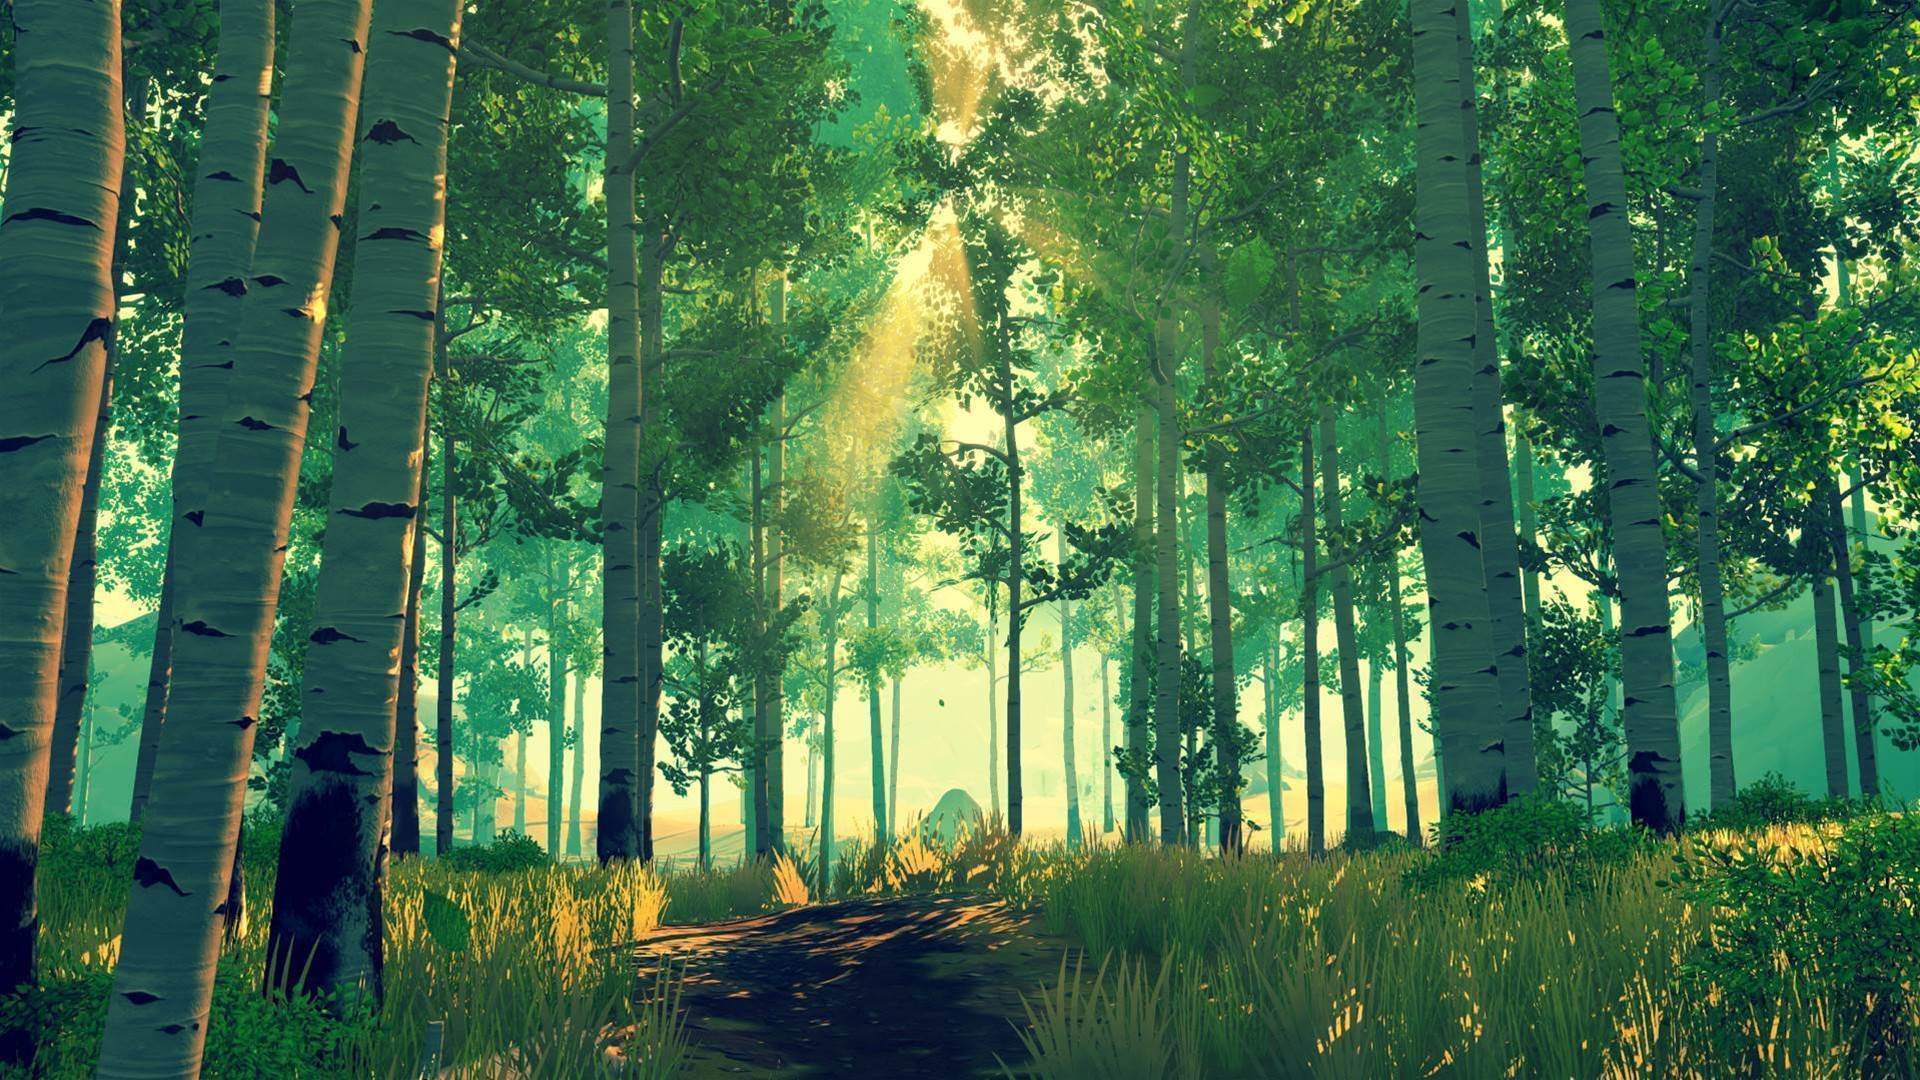 Firewatch developer acquired by Valve